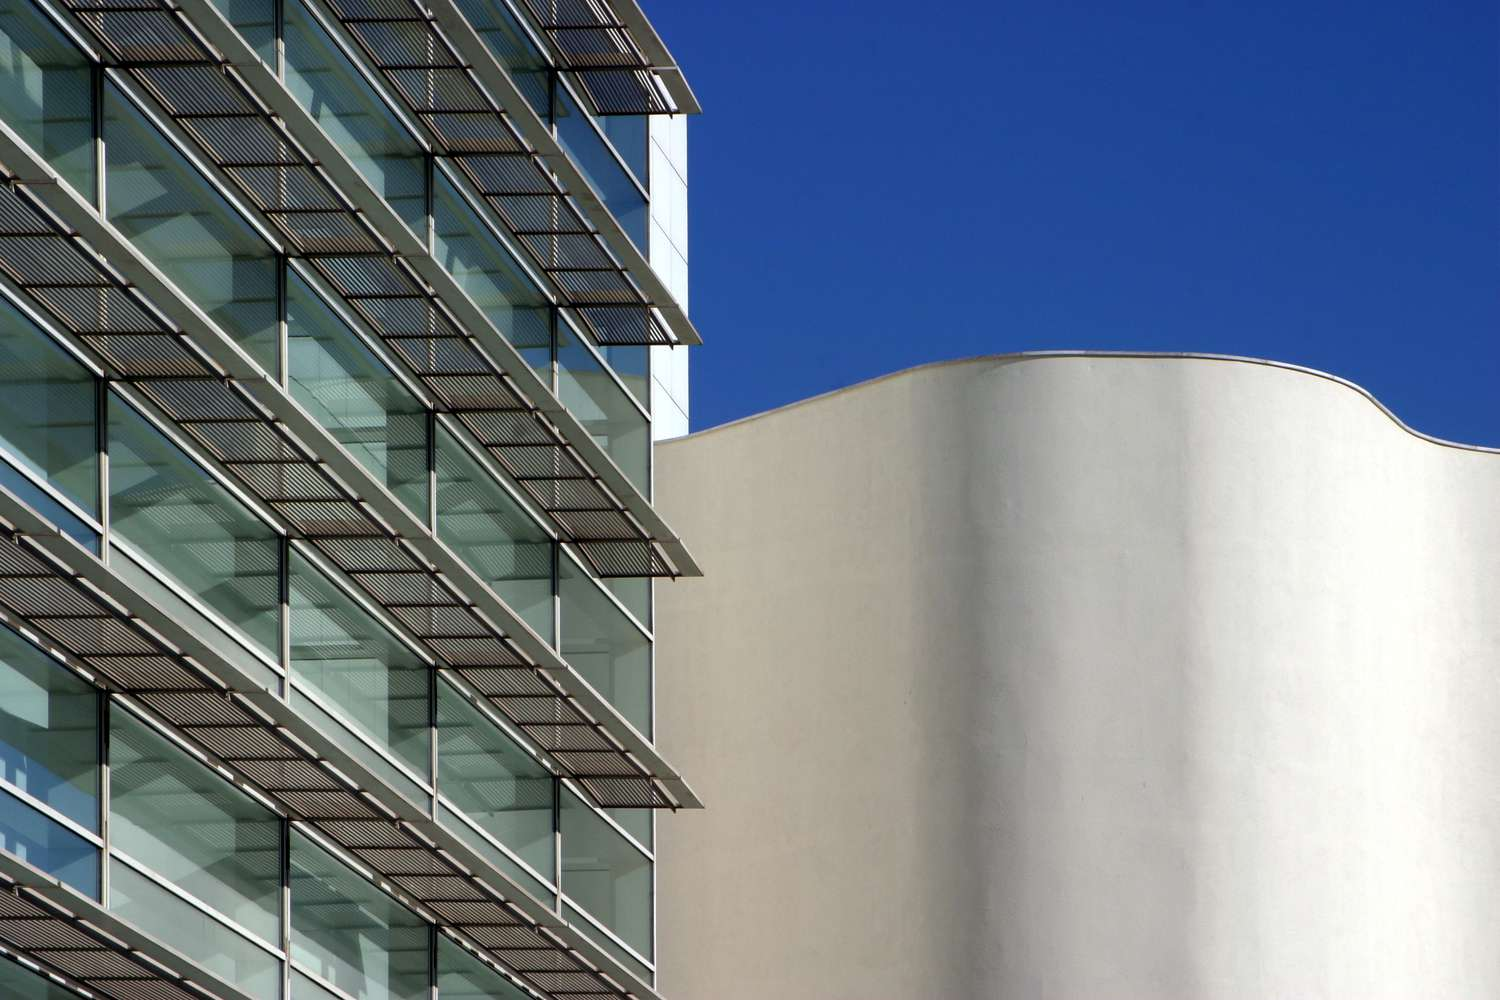 Exterior of the Contemporary Art Museum in Barcelona